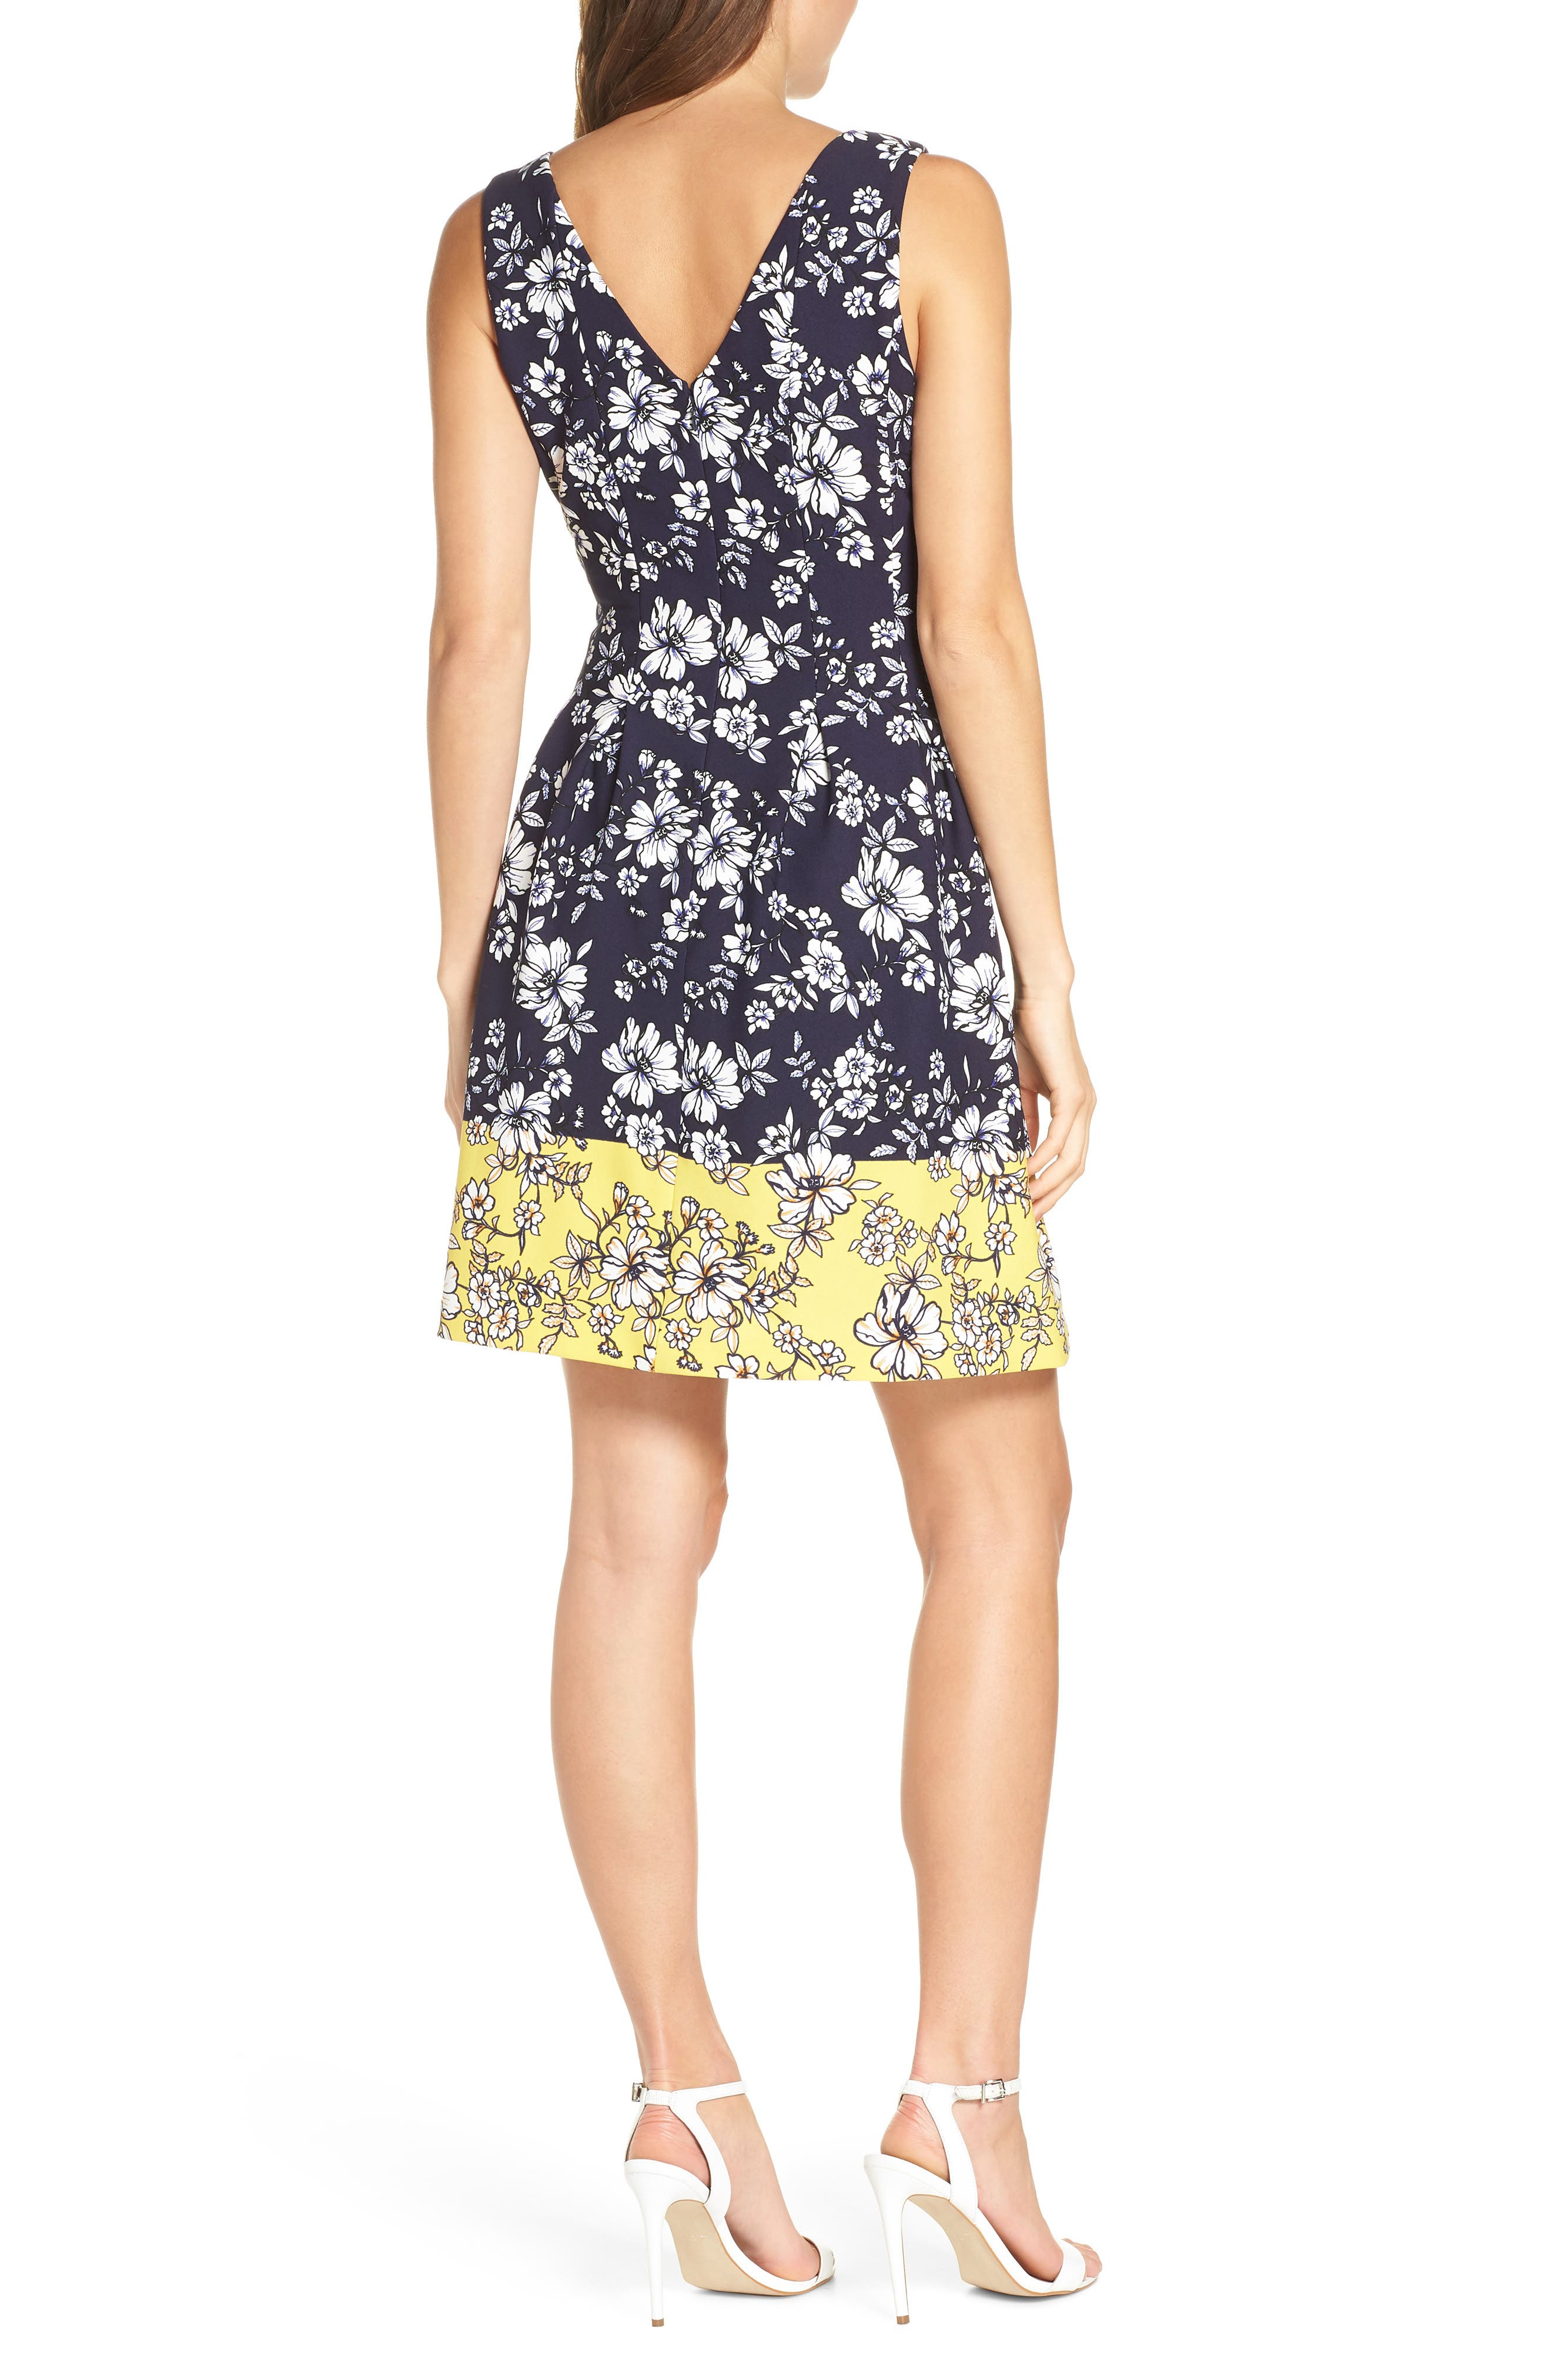 VINCE CAMUTO, Floral Print Pleated Fit & Flare Dress, Alternate thumbnail 2, color, NAVY/ YELLOW